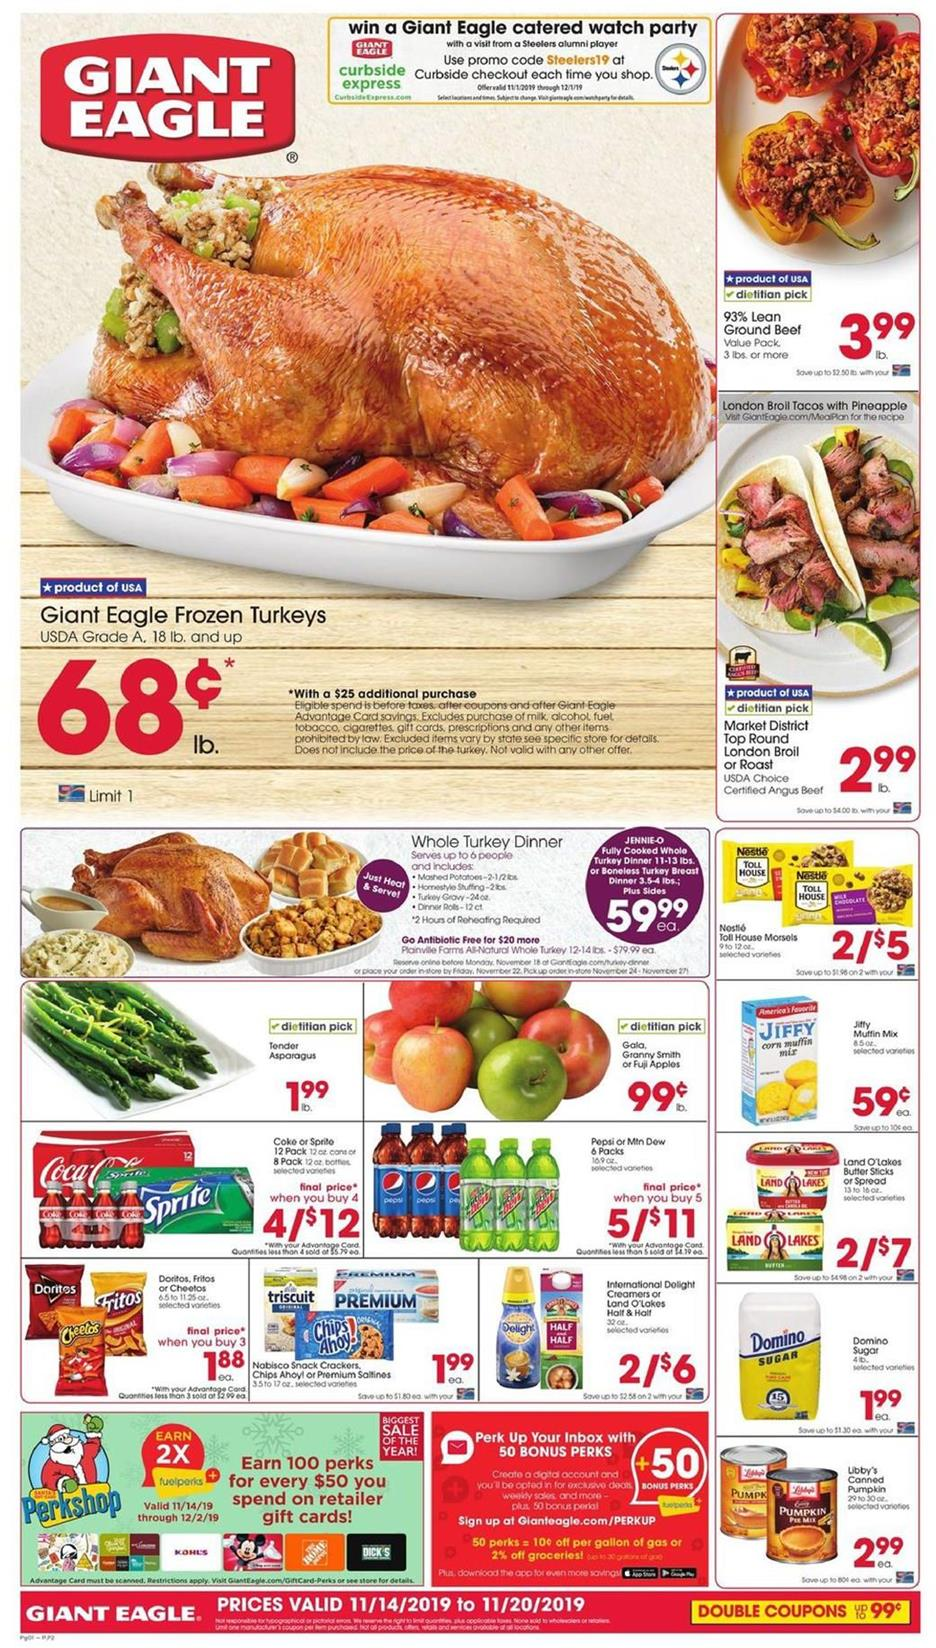 giant eagle thanksgiving food ad valid from nov 13 19 2019